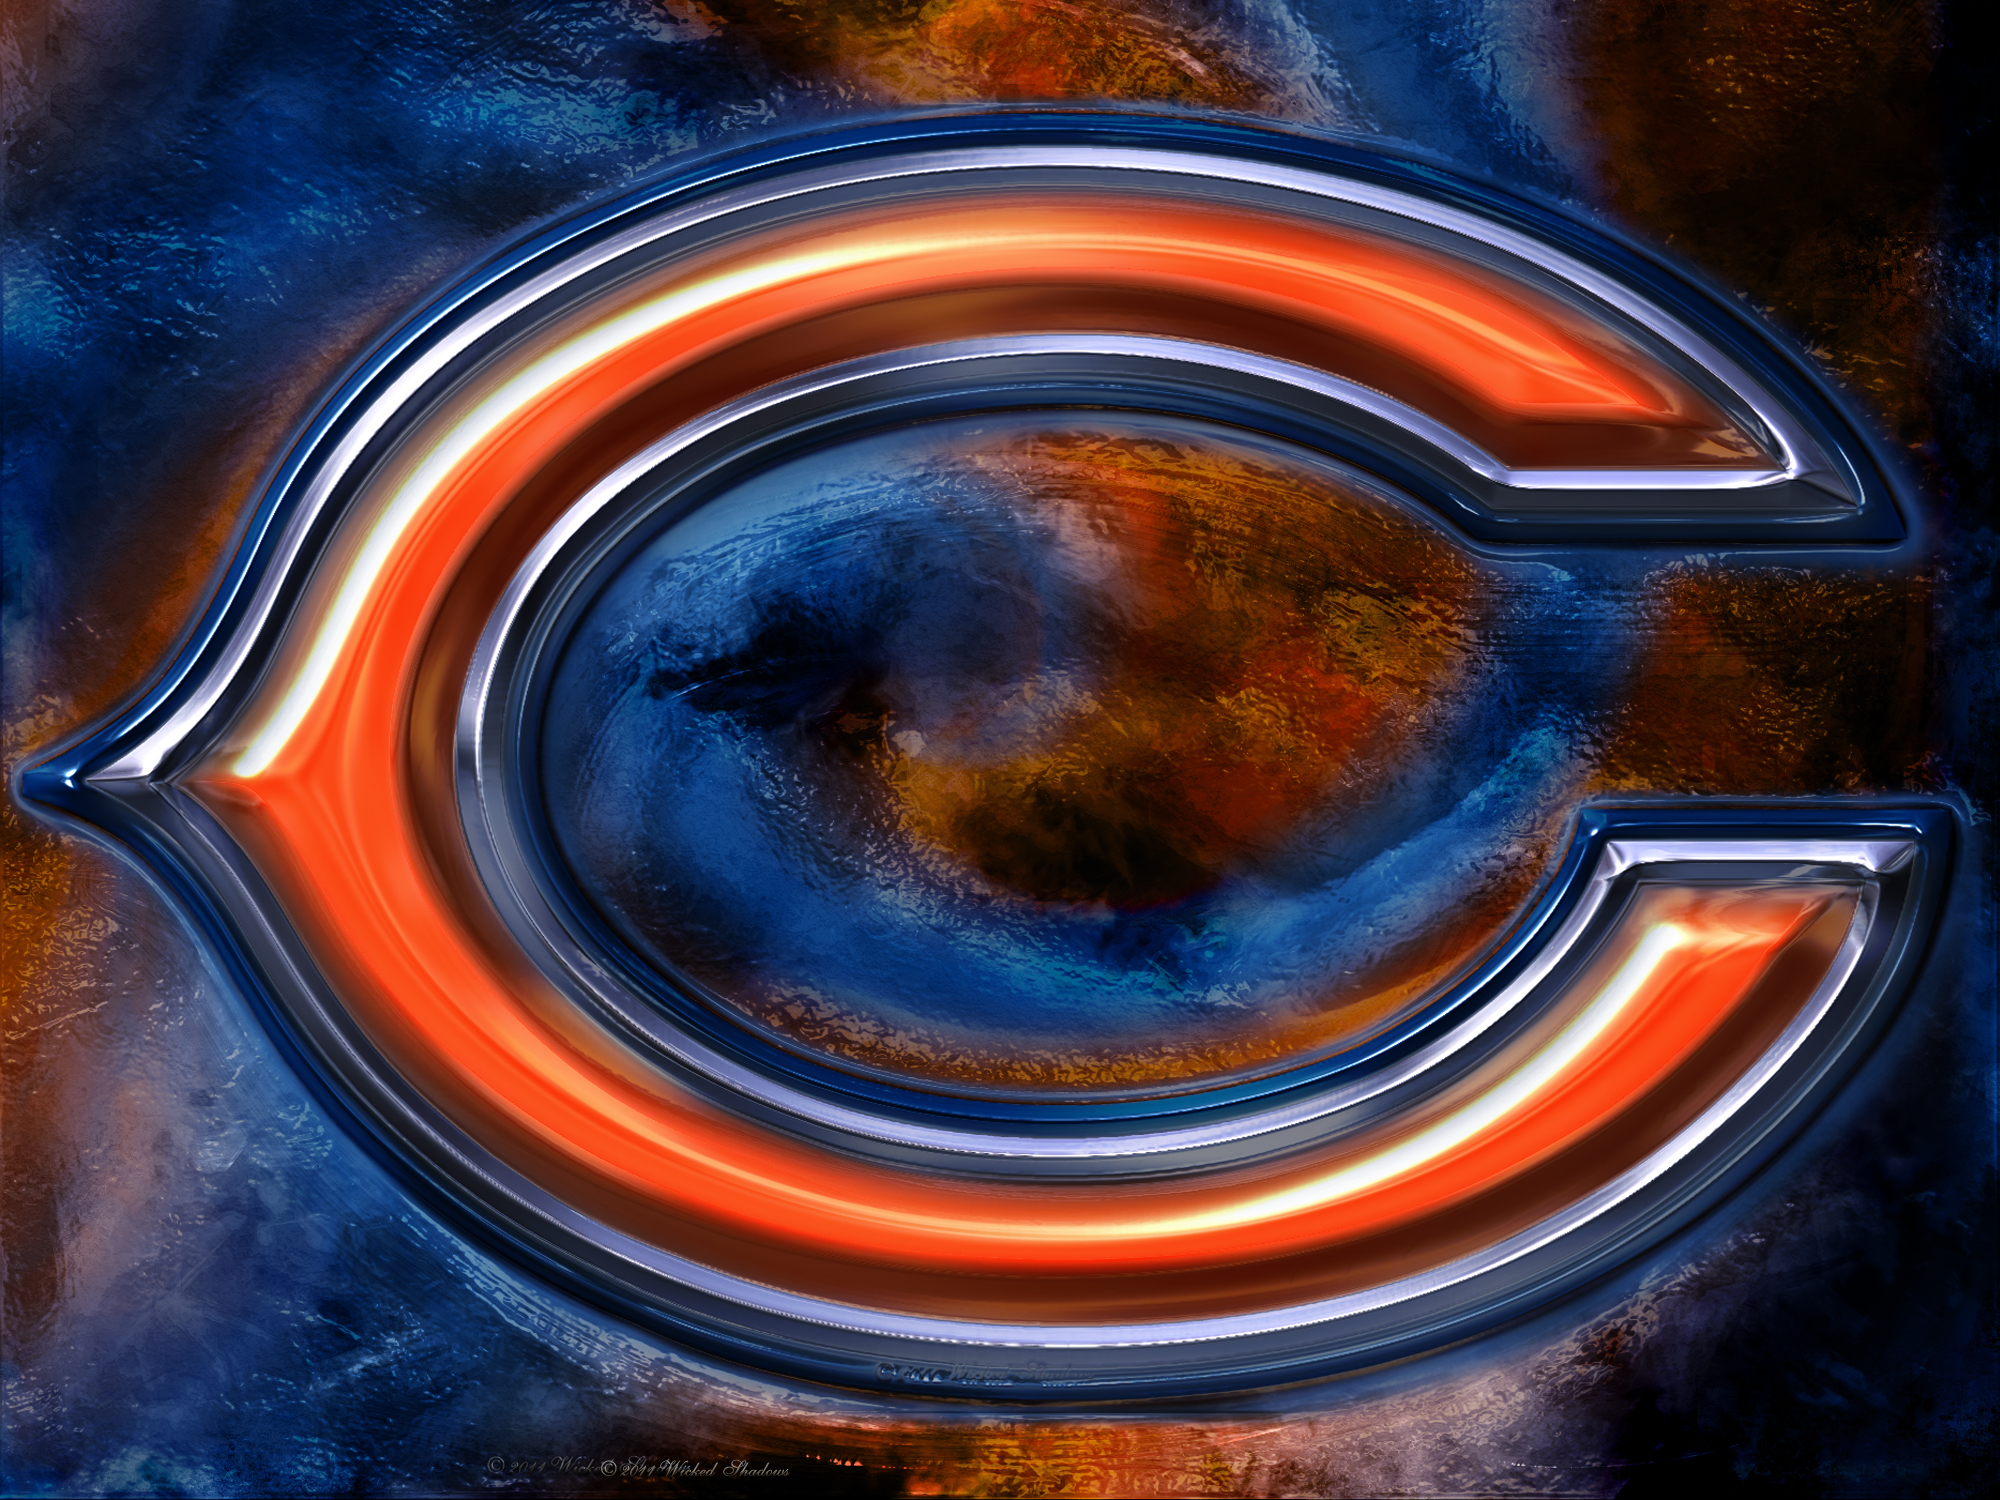 Chicago Bears 3D Logo Wallpaper Download Wallpaper 2000x1500